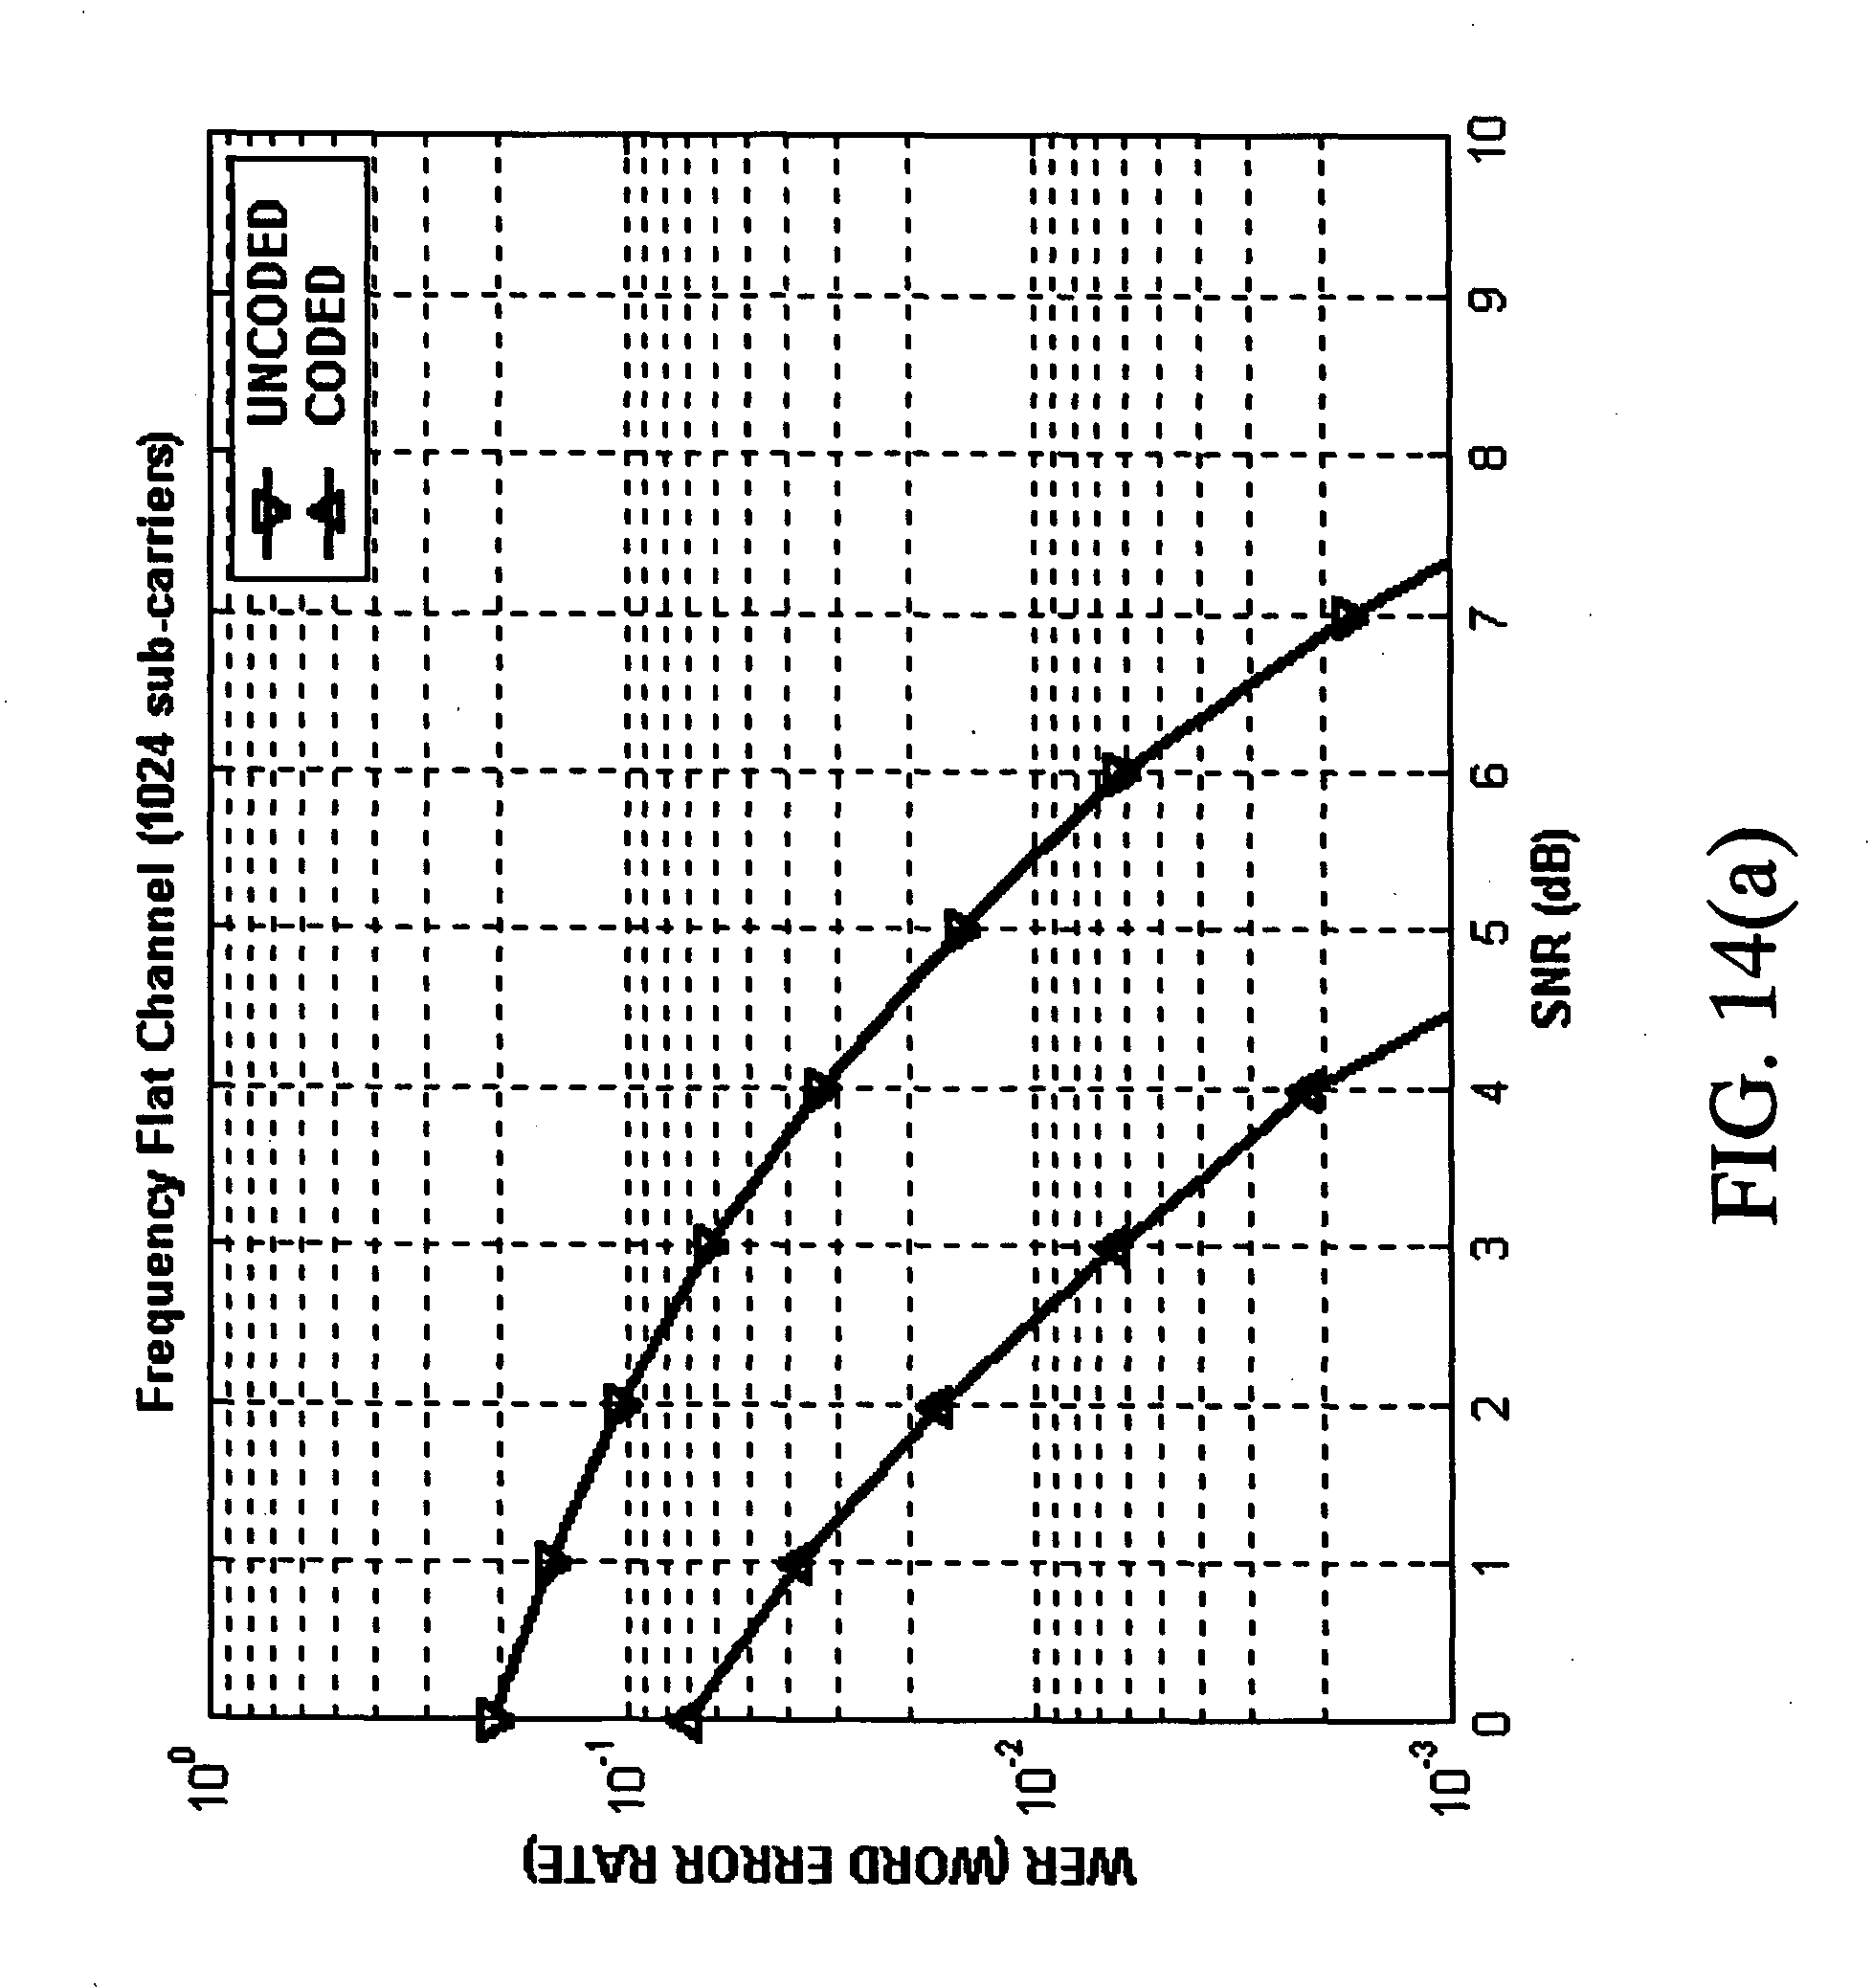 Peak to average power reduction for multicarrier modulation thesis